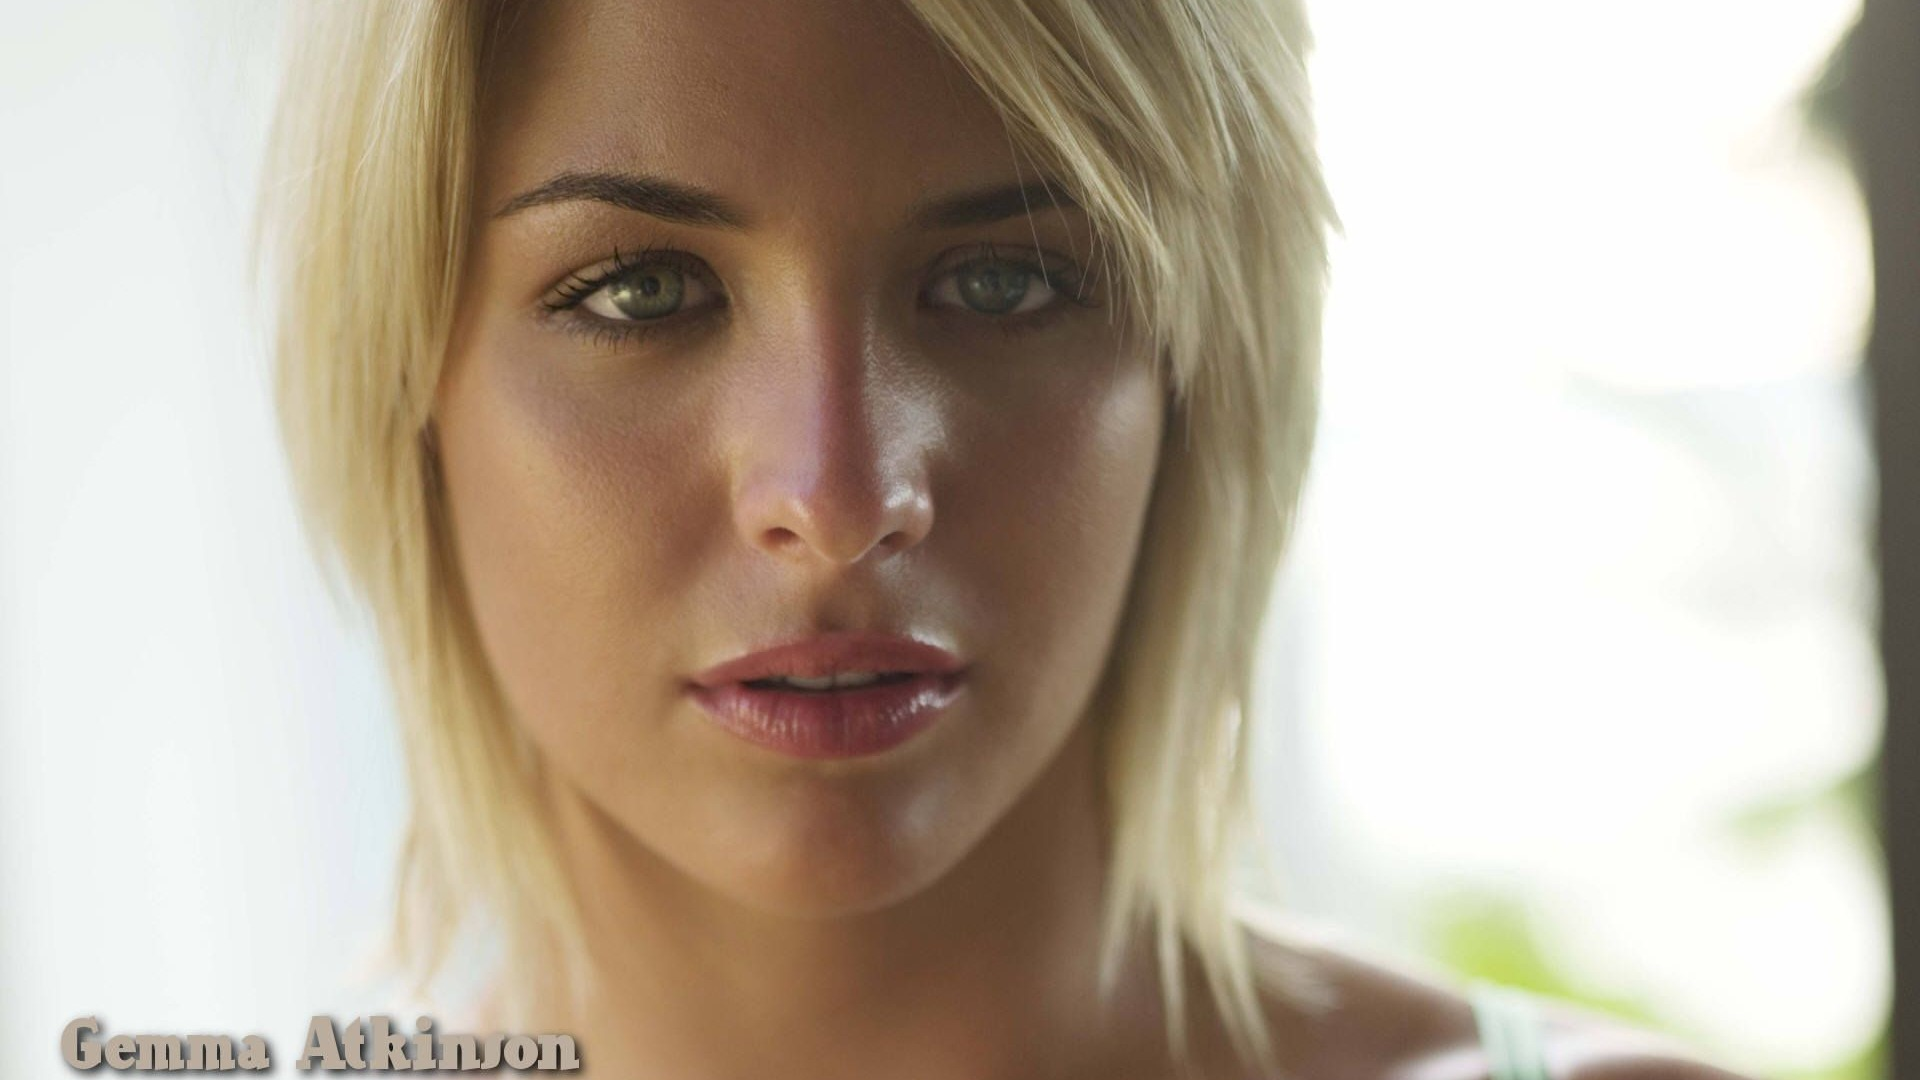 Gemma Atkinson #022 - 1920x1080 Wallpapers Pictures Photos Images